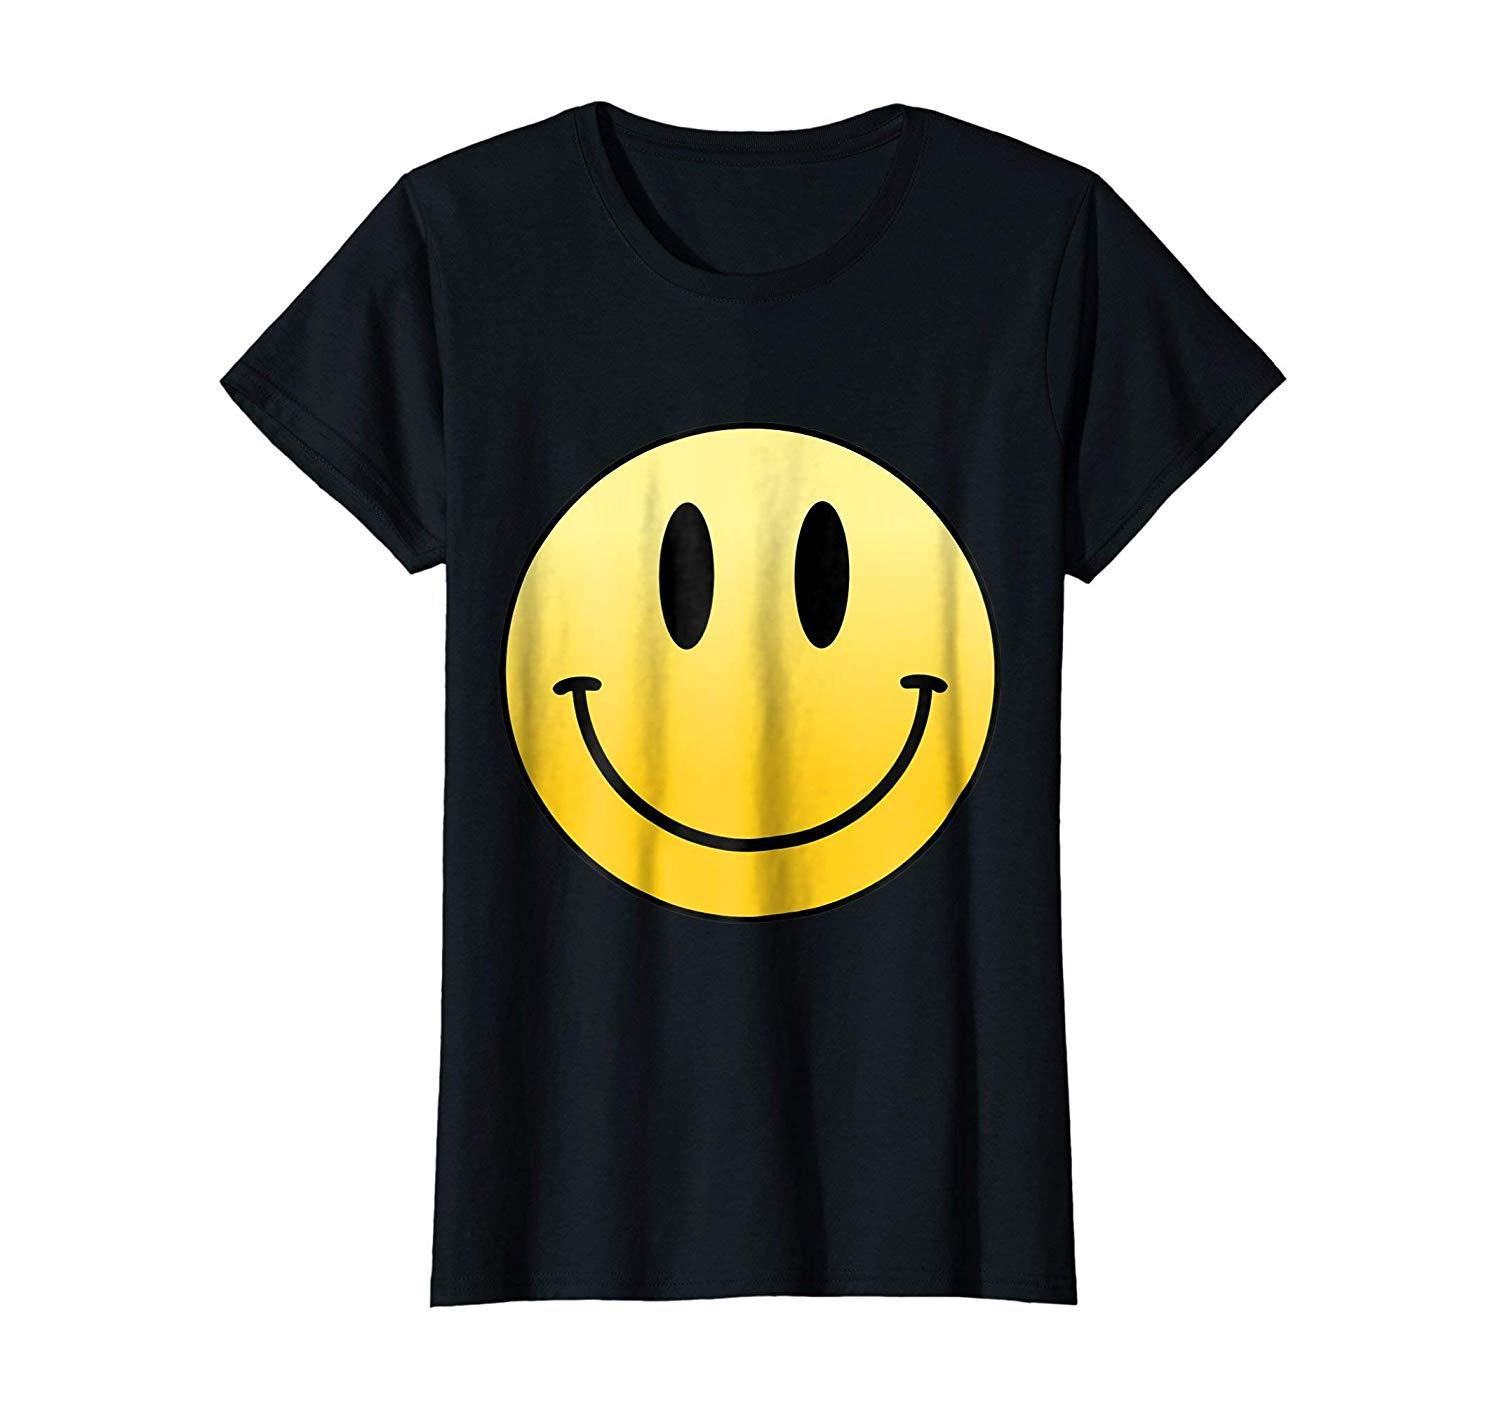 New Shirt - Mr Happy Smiley Face Positive Cute T Shirt Wowen